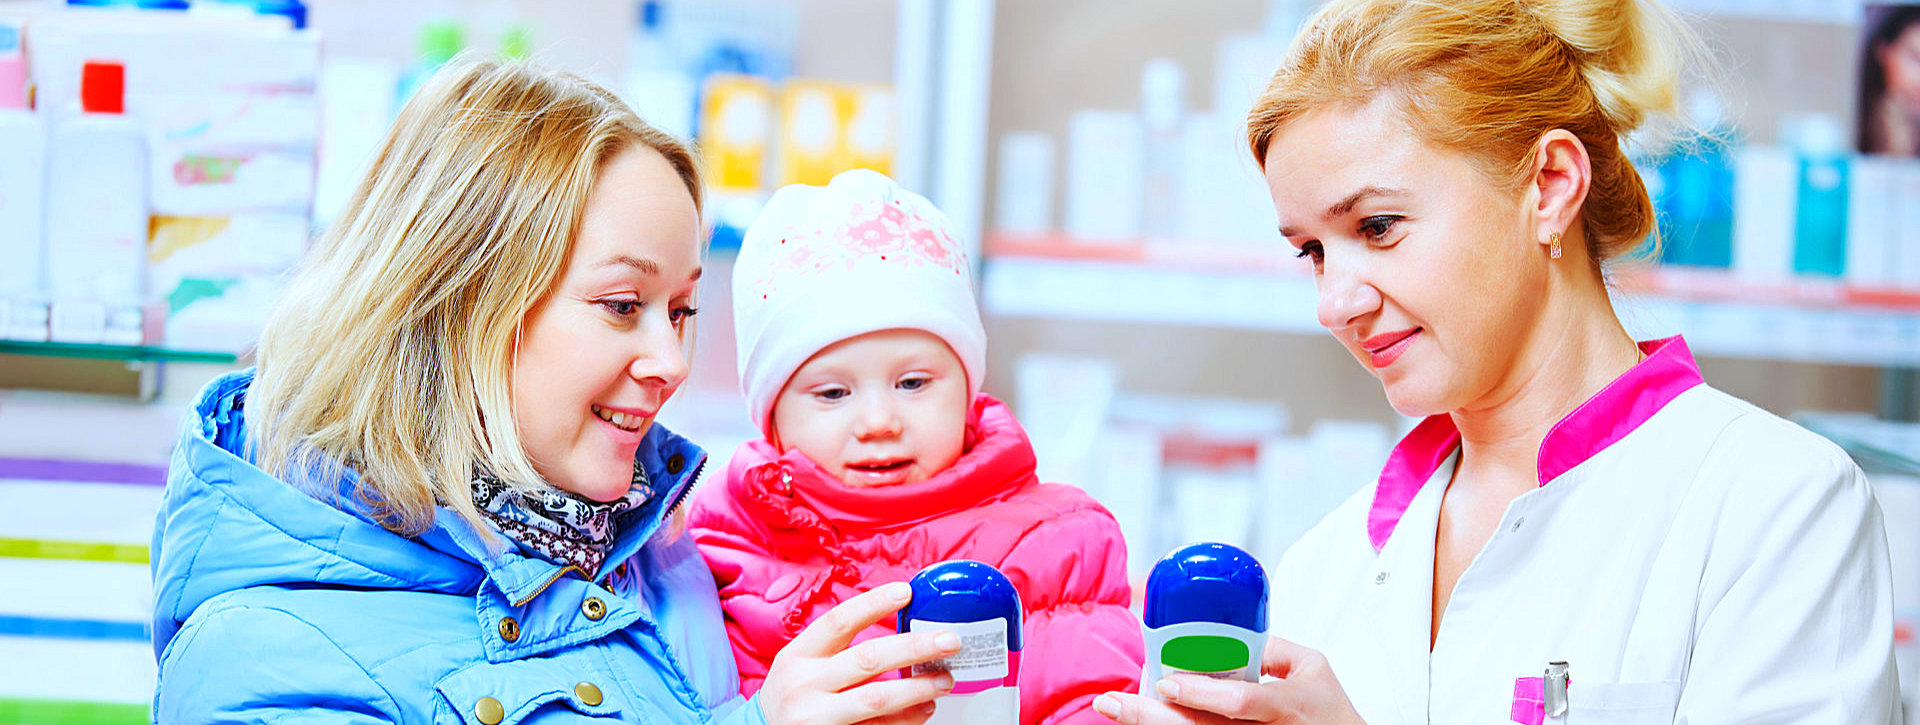 pharmacist assisting a woman carrying a baby